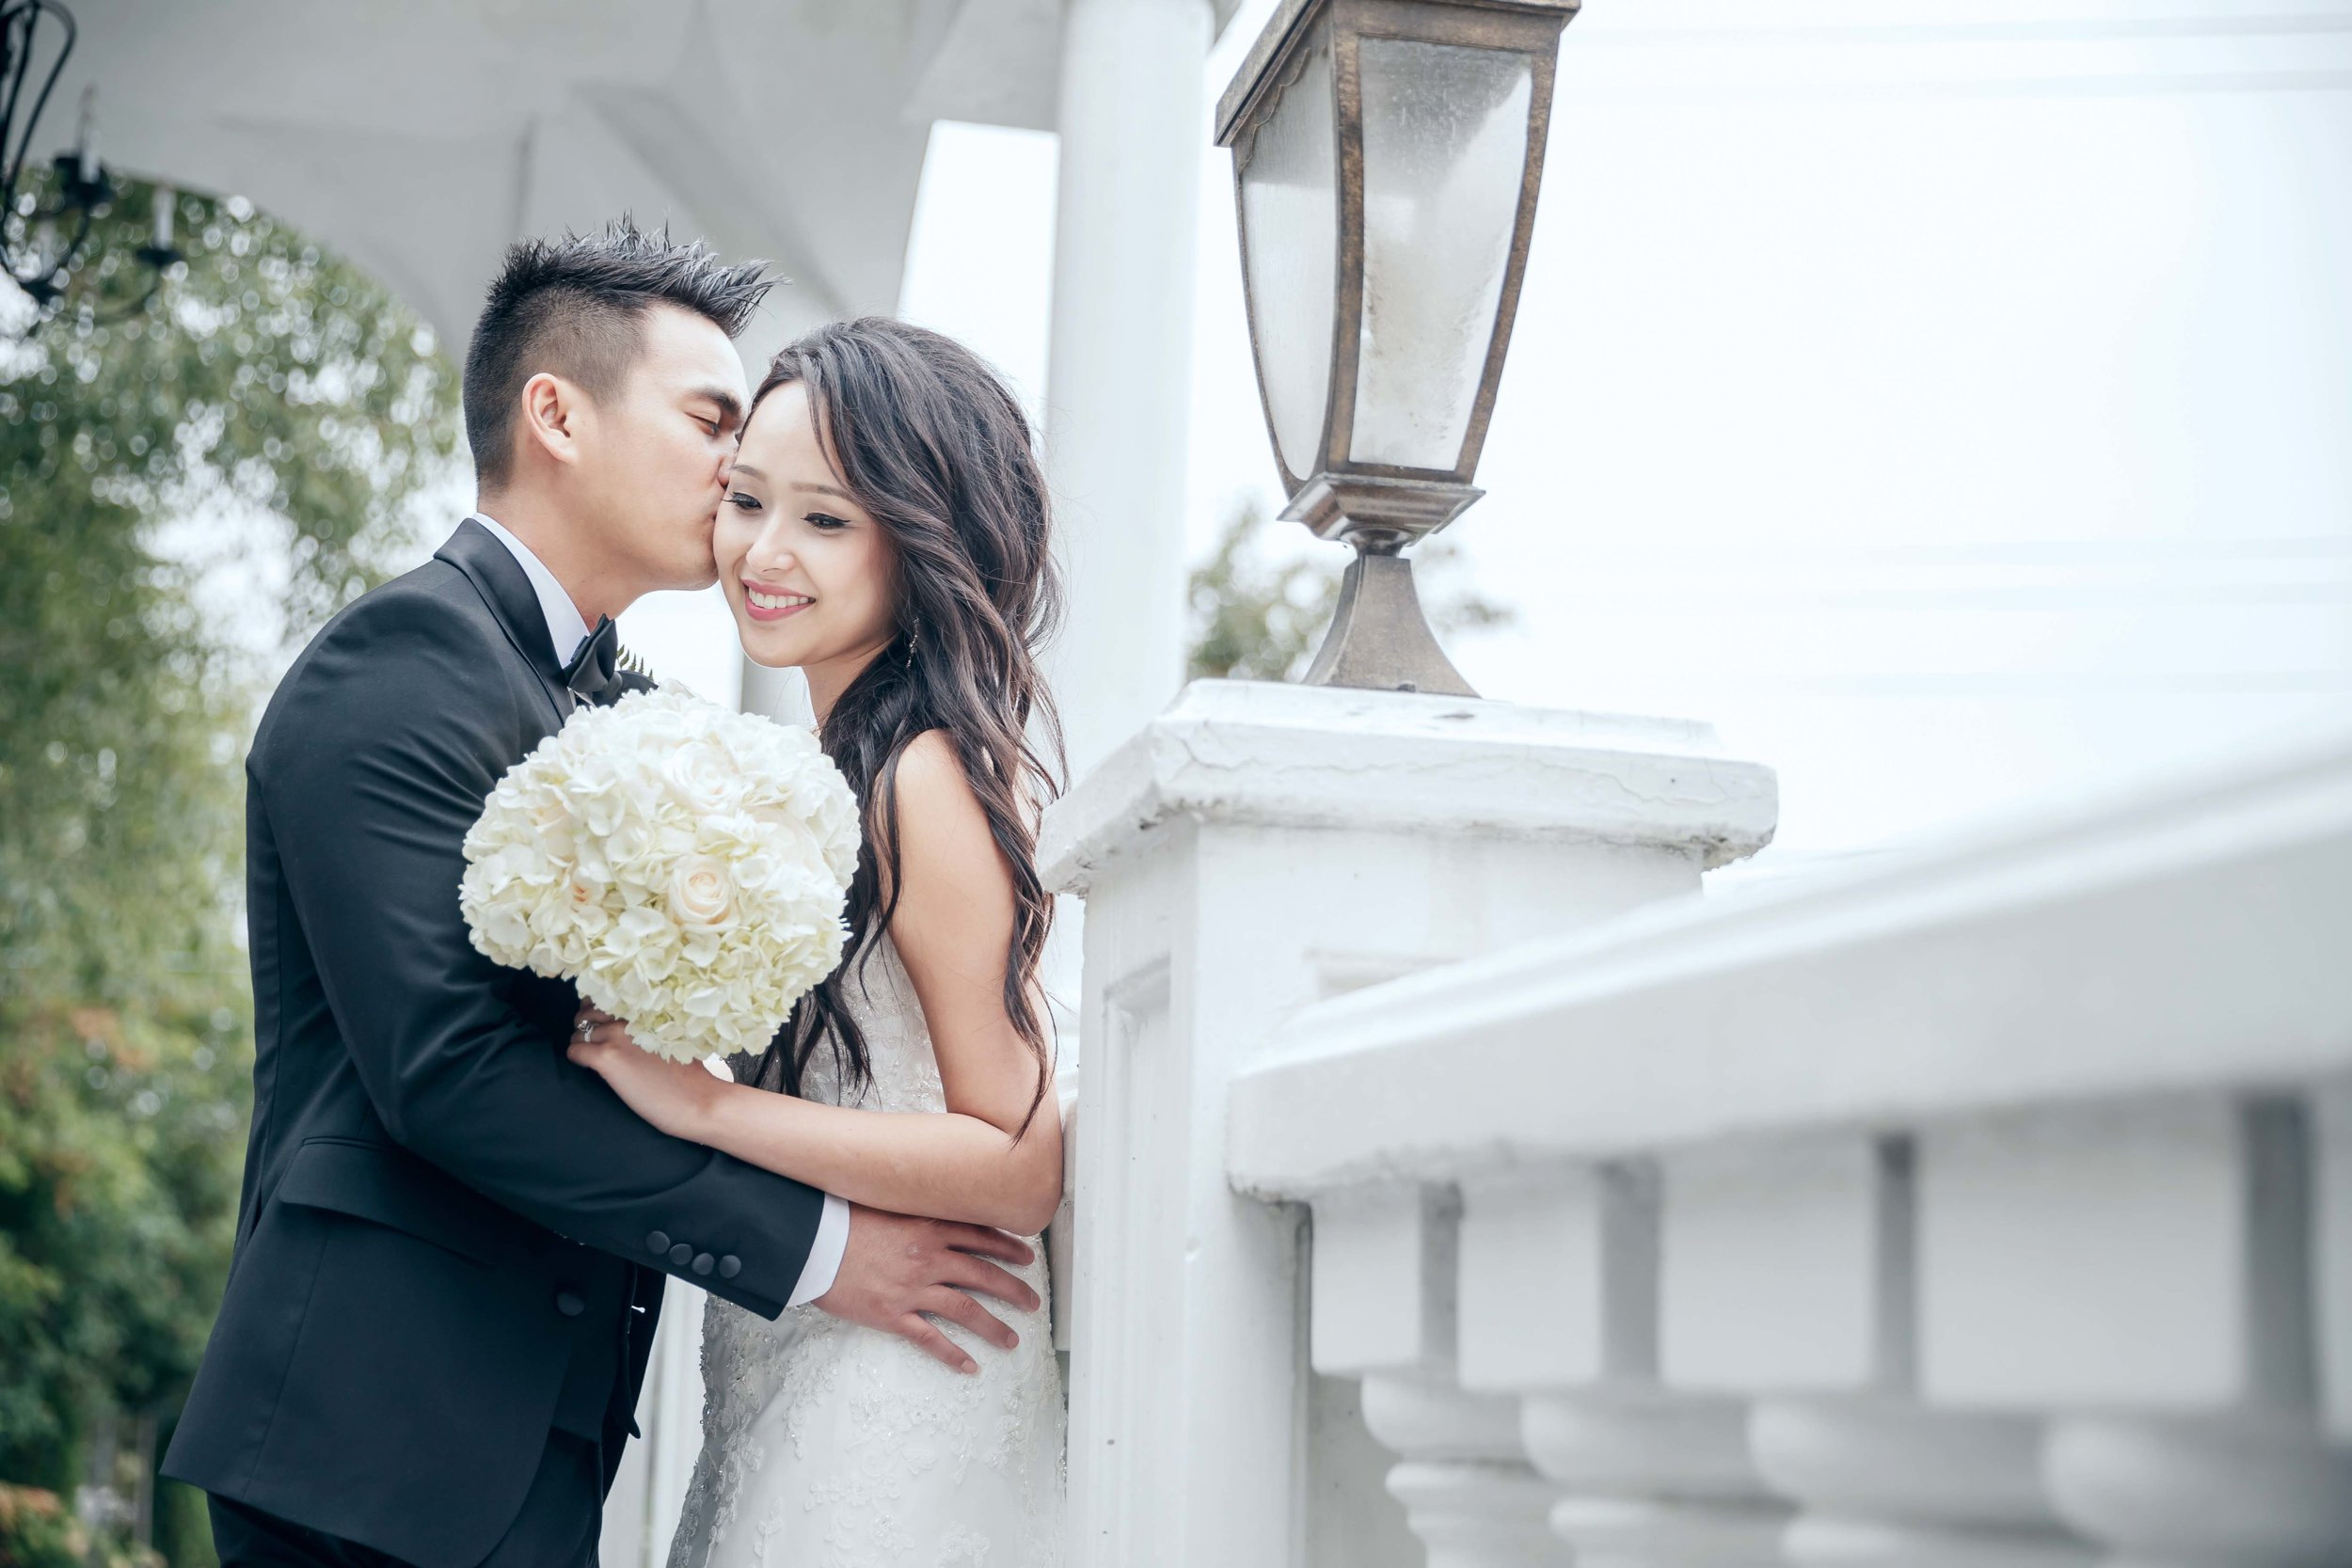 Vivian & Phuong | Paradise banquet hall - A Blush Moment has exceeded all expectations and helped us truly enjoy our special day. Jeannie Yeoh (head planner) was there every step of the way and without her help we could not have had such a successful wedding. Throughout the planning process she was diligent and attentive. On the wedding date it was smooth sailing. I only found out post wedding there were so many situations that were happening that I did not know of. A Blush Moment solved all problems quickly and efficiently that I was never ever bothered. I am truly grateful for such a fantastic planner who cares about our wedding as much as we do. Thank you to A Blush Moment for making our day the beginning to our happily ever after!